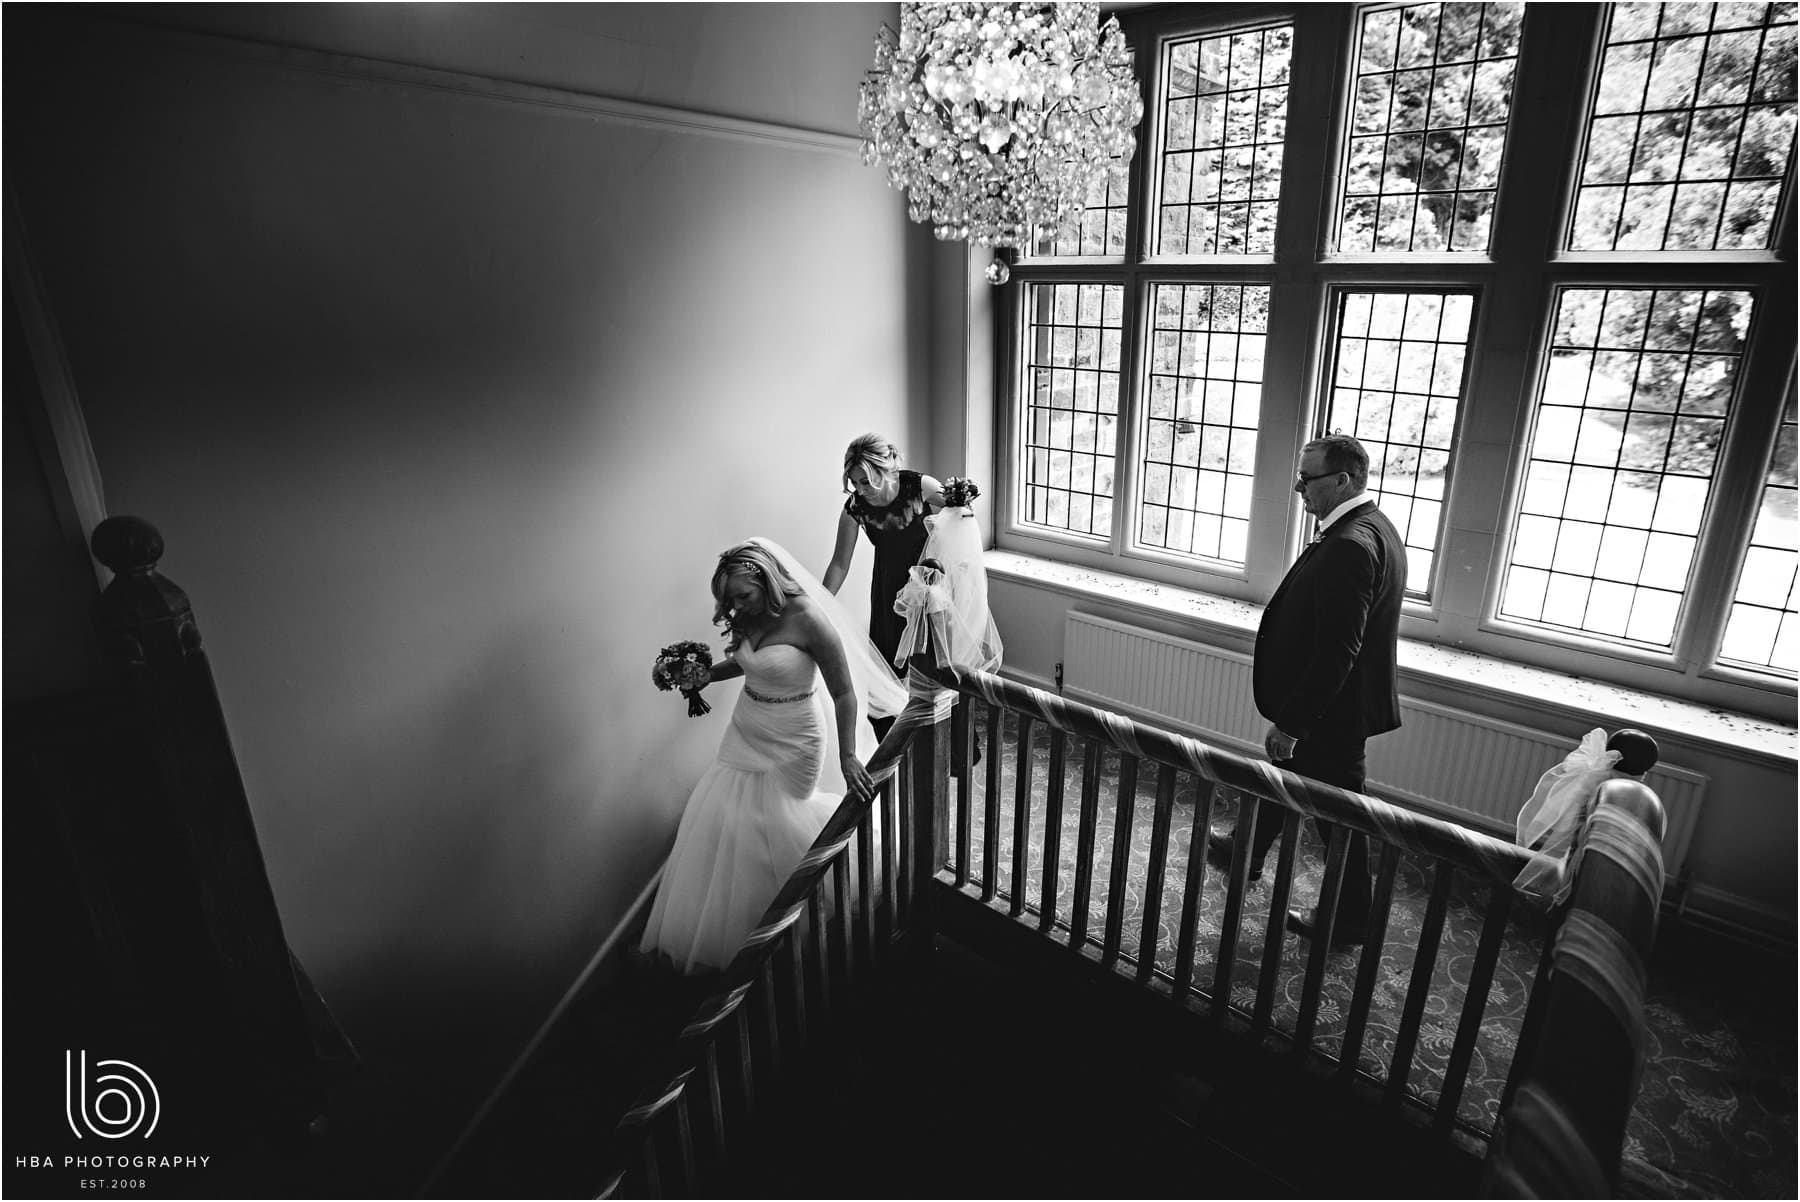 the bride walking down the stairs